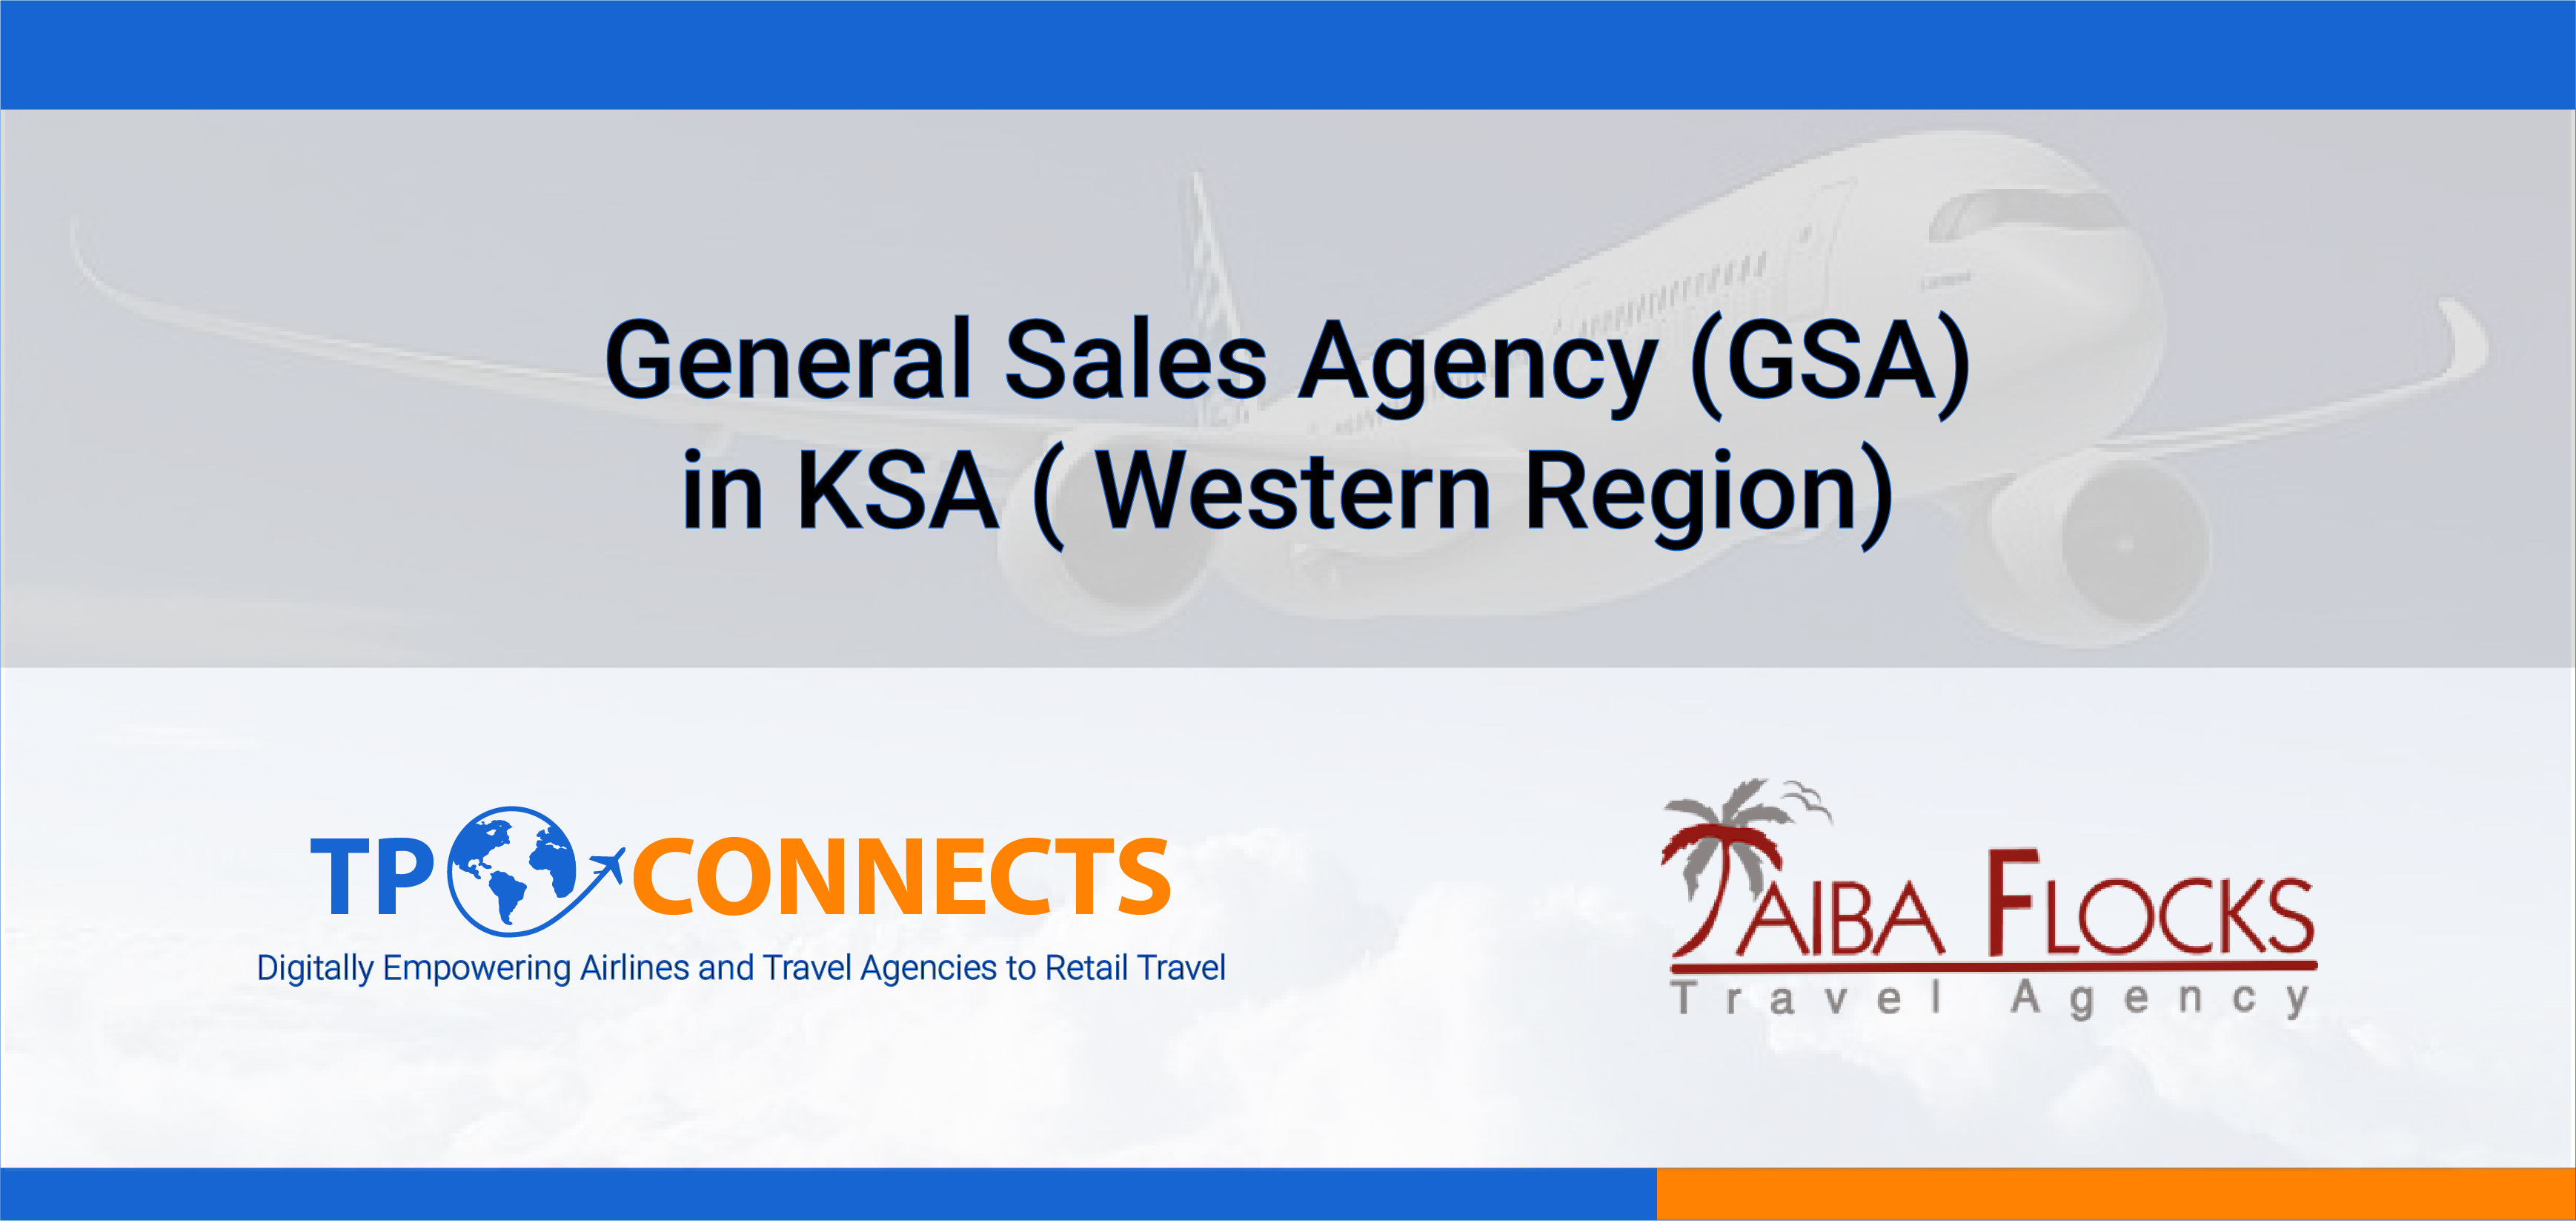 TPConnects appoints Taiba Flocks as General Sales Agent (GSA) in KSA (Western Province).